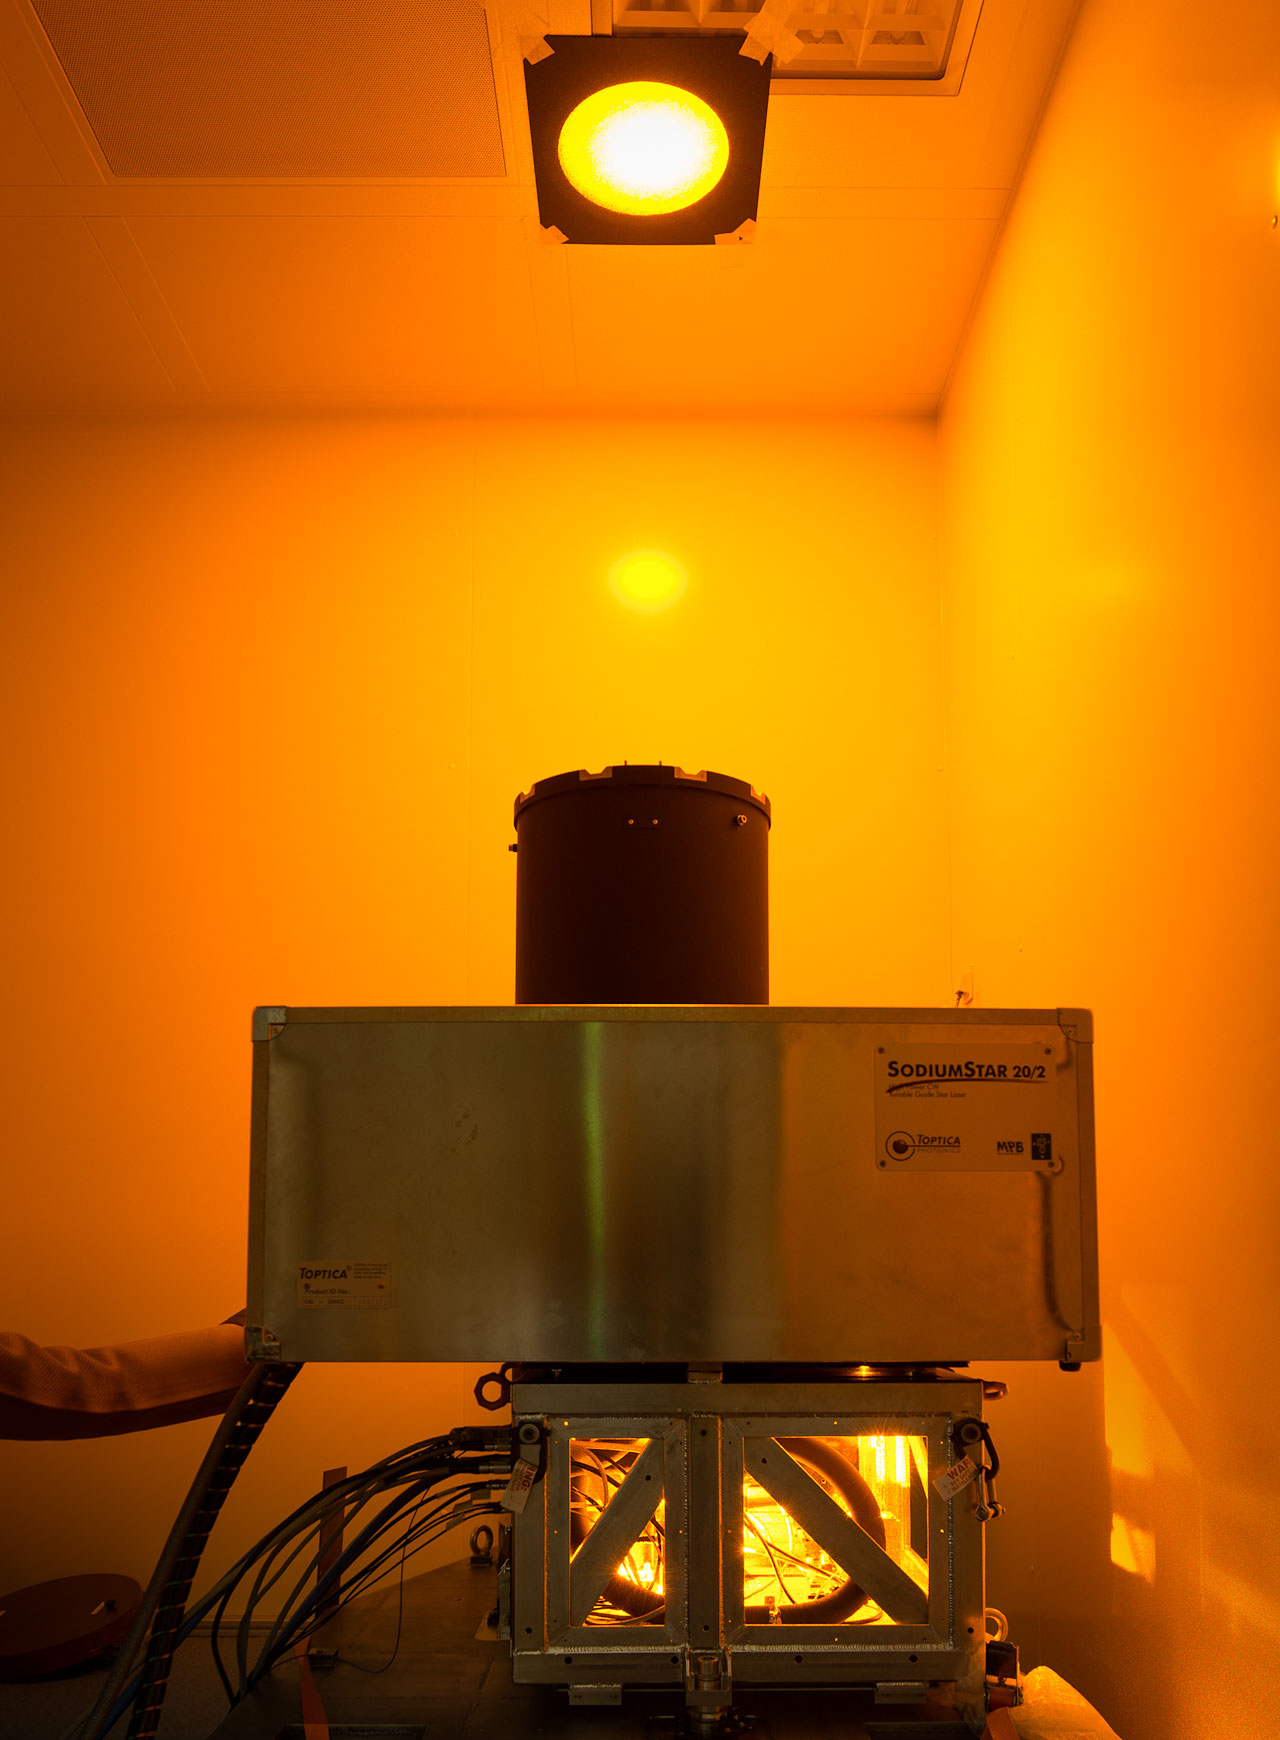 The first 22-watt sodium laser of the Adaptive Optics Facility